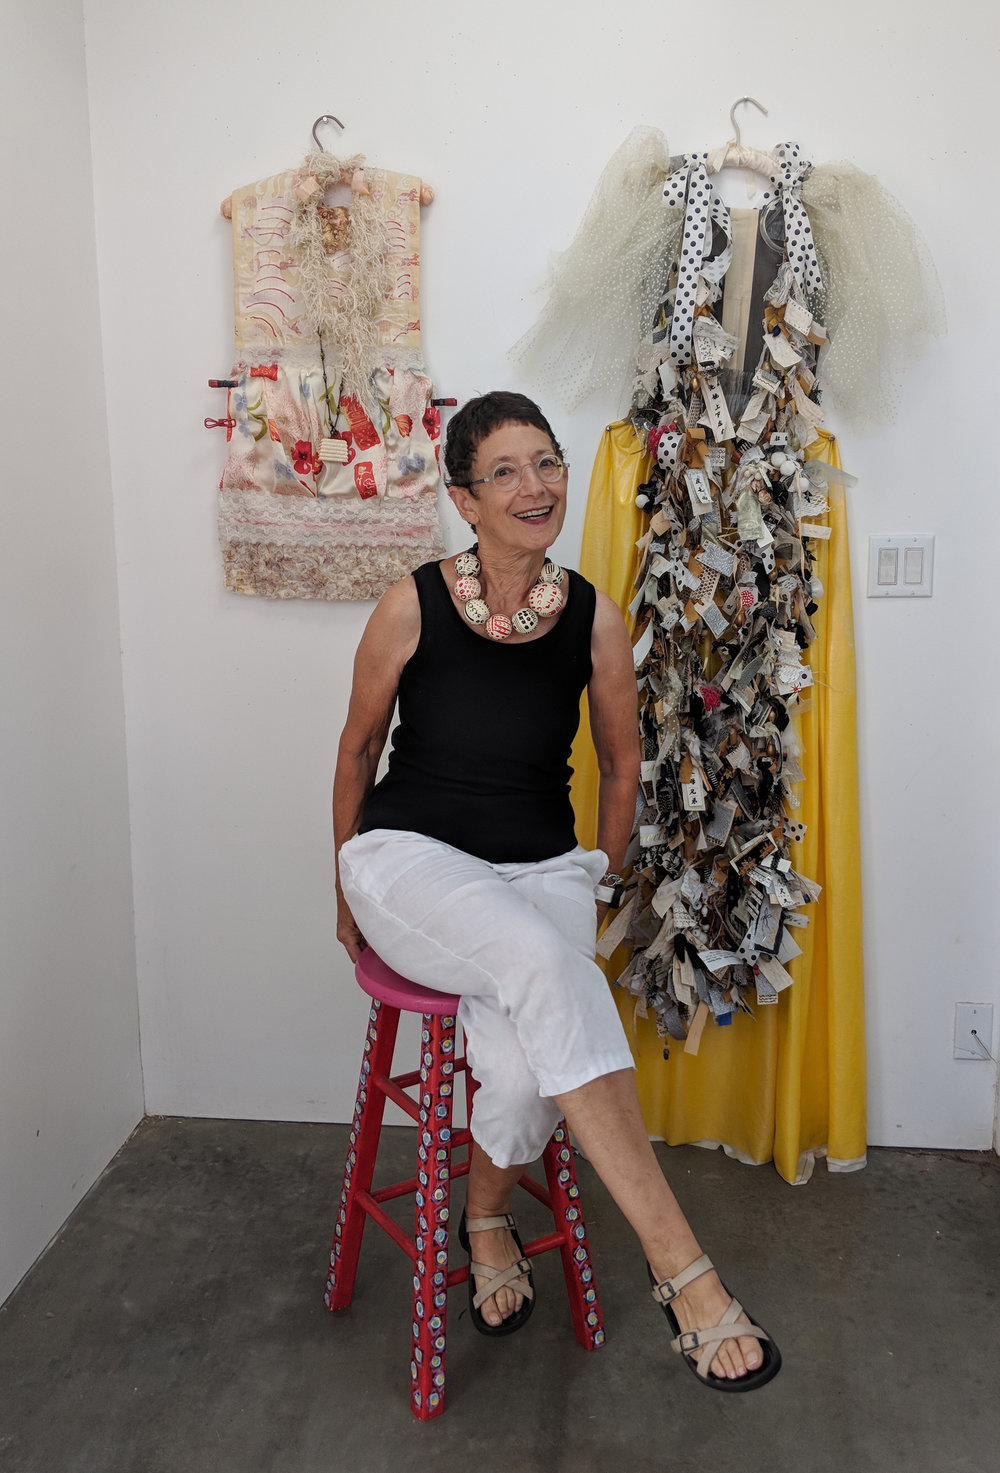 In my Tucson studio with some of my textile art pieces.